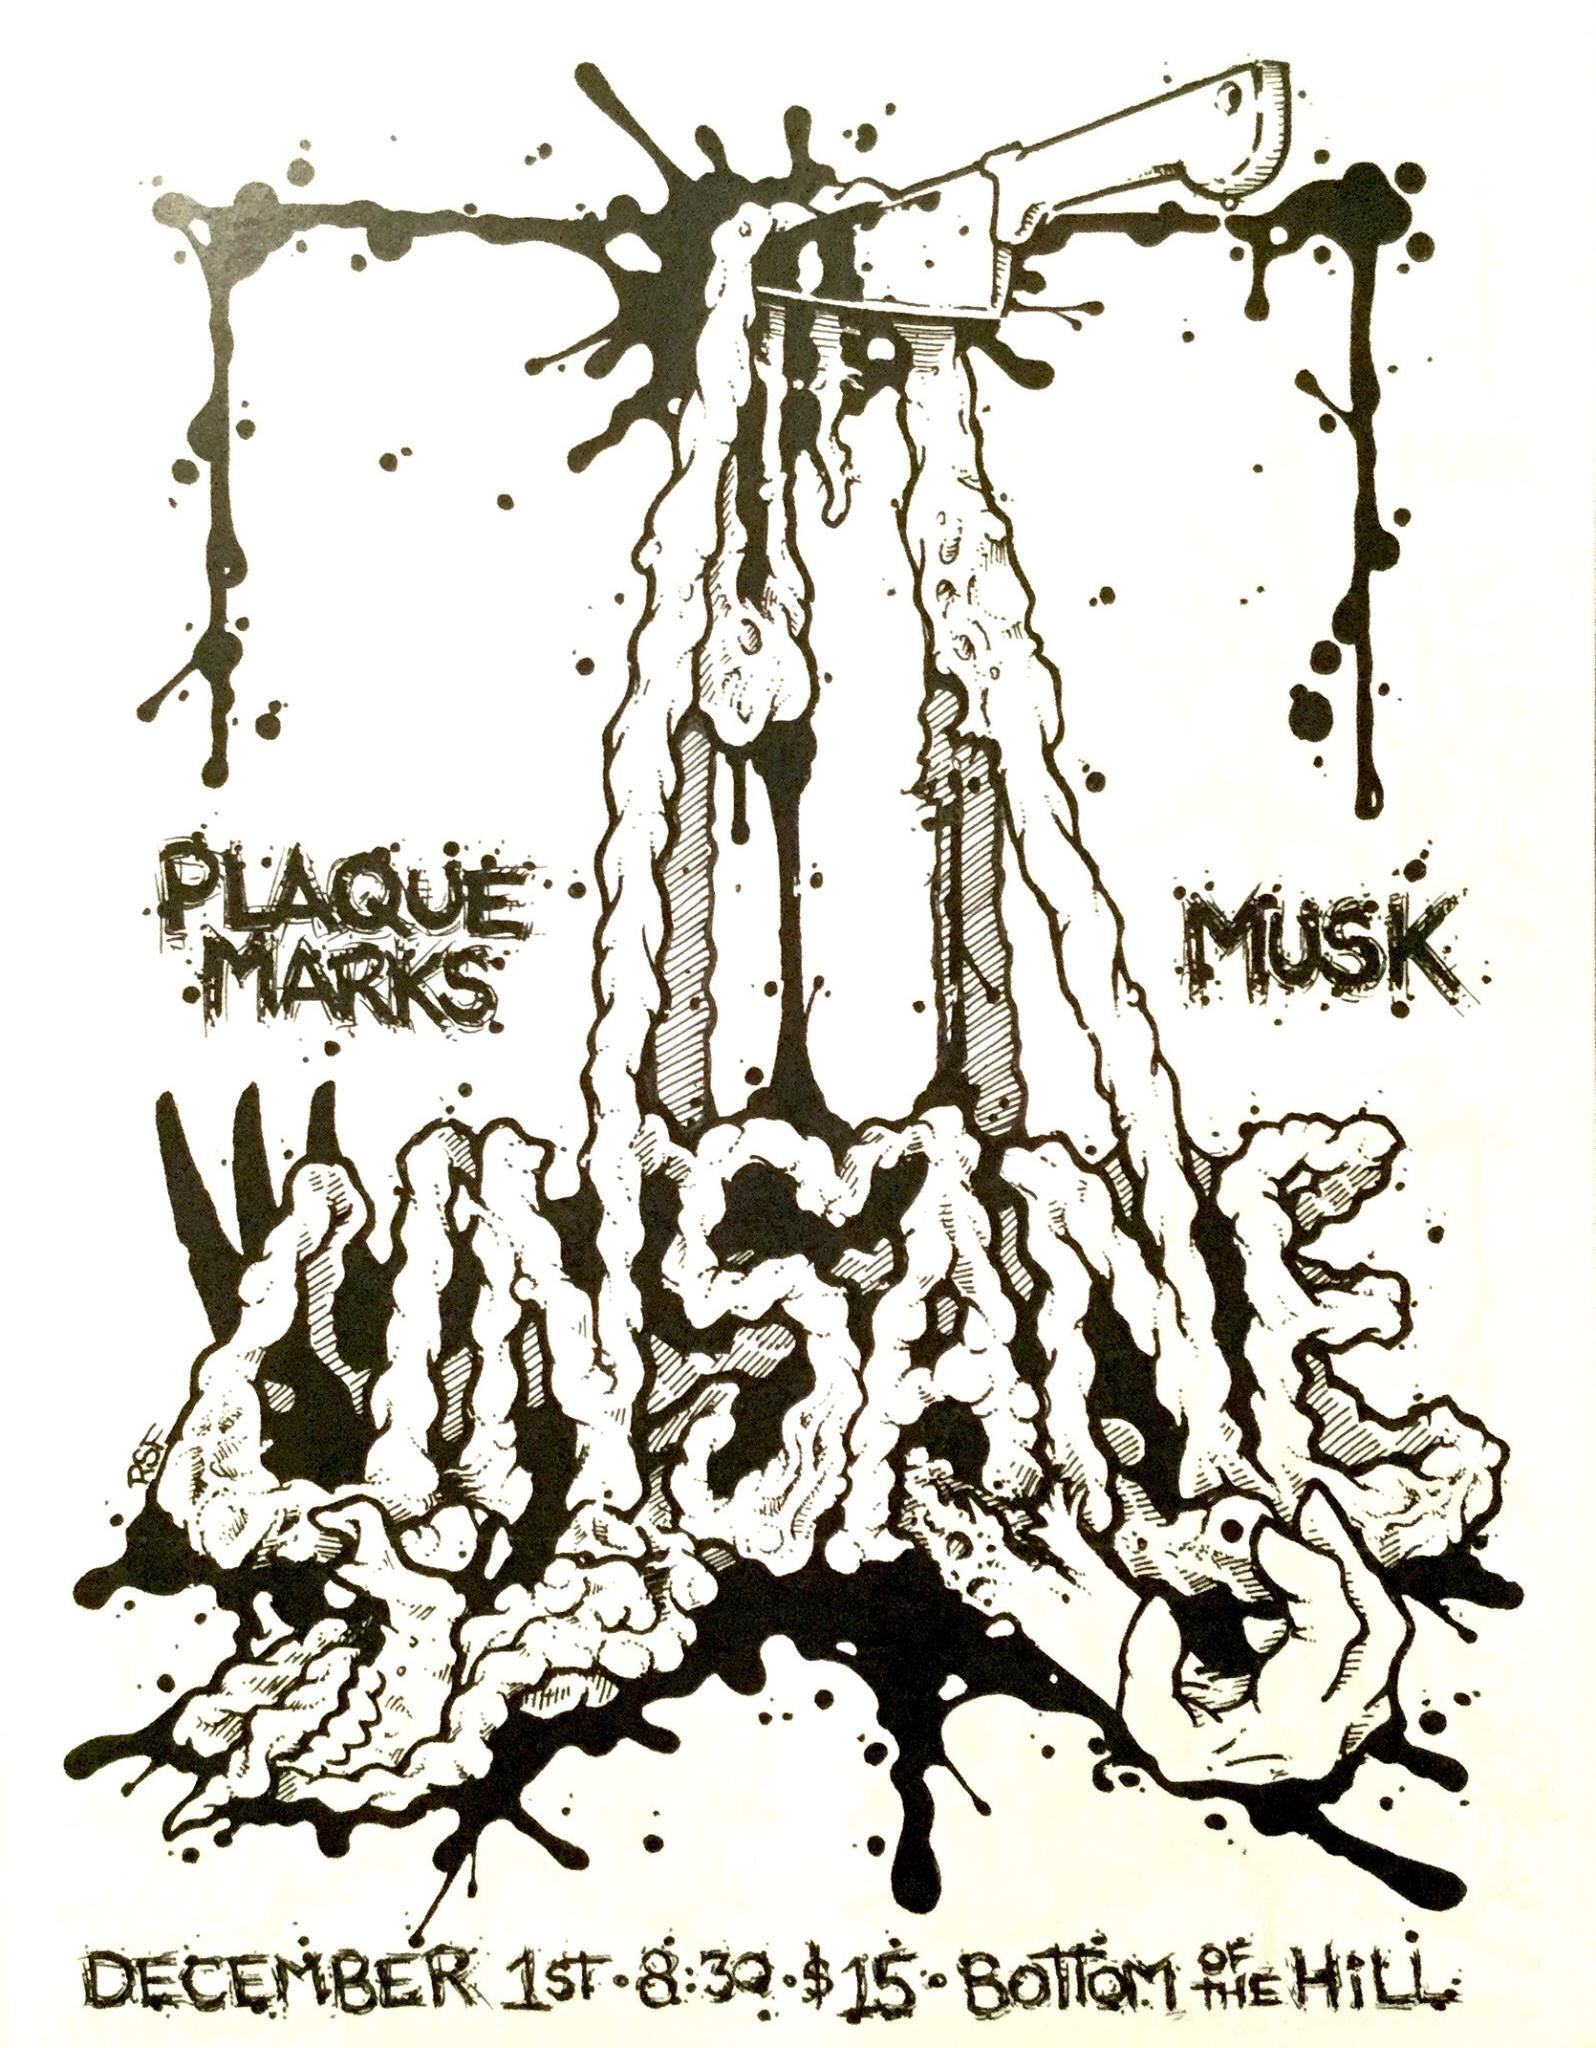 Bottomofthehill unsane plaque marks musk dj sasquatch 830pm doors music at 900pm all ages 15 unsane unsanenyc noise rock plaque marks facebookplaquemarks punk noise rock malvernweather Choice Image